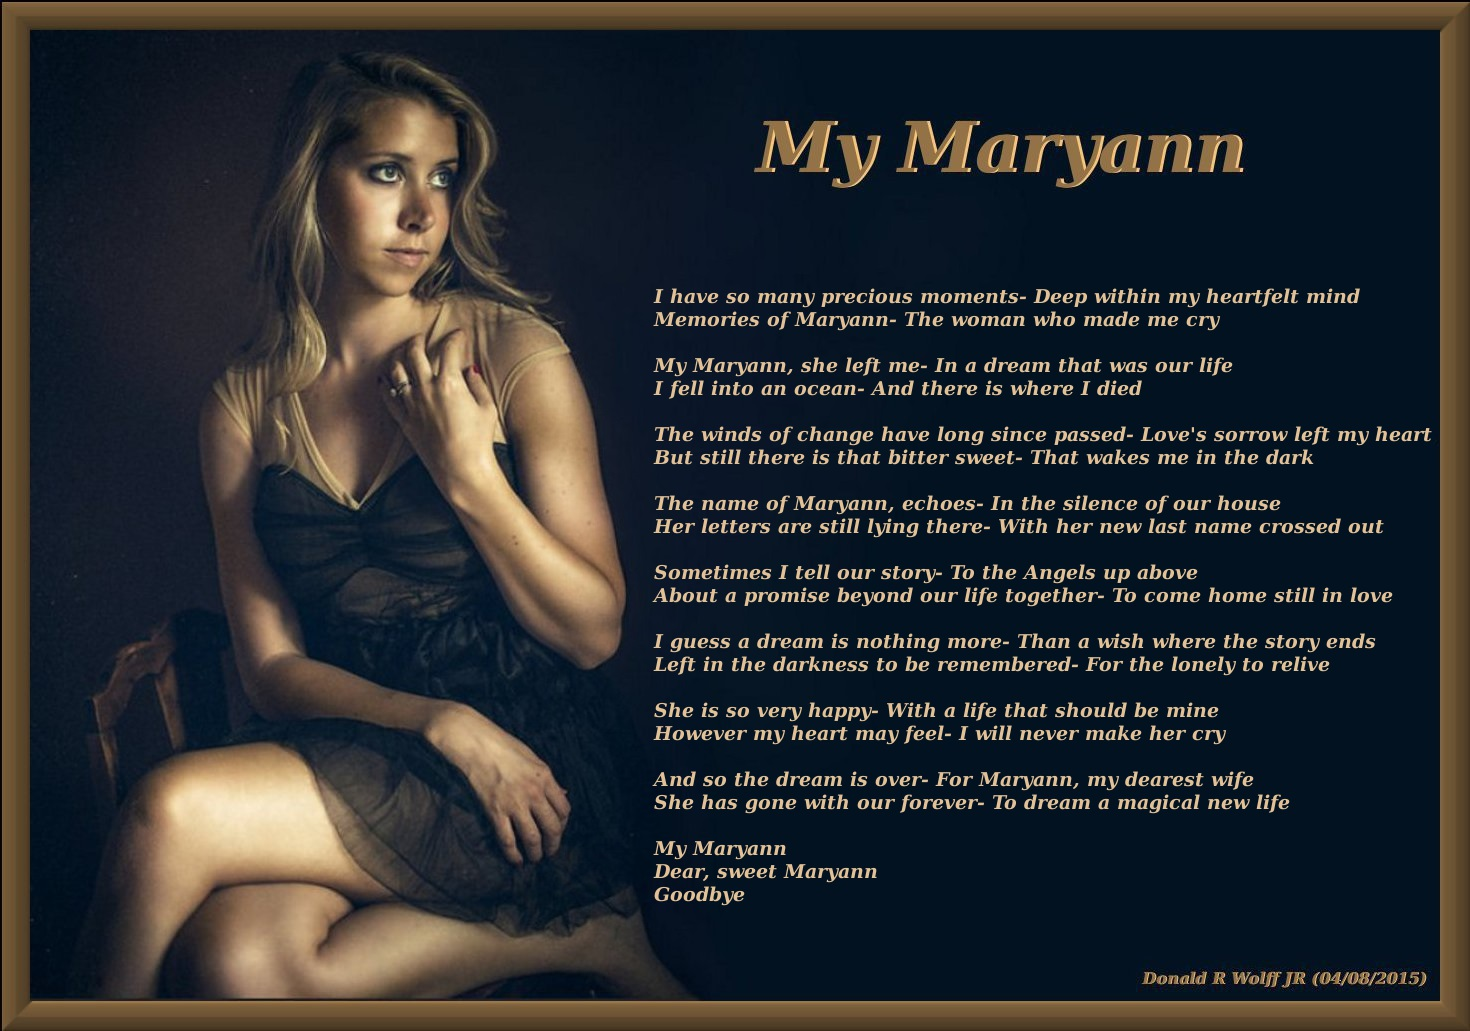 My Maryann